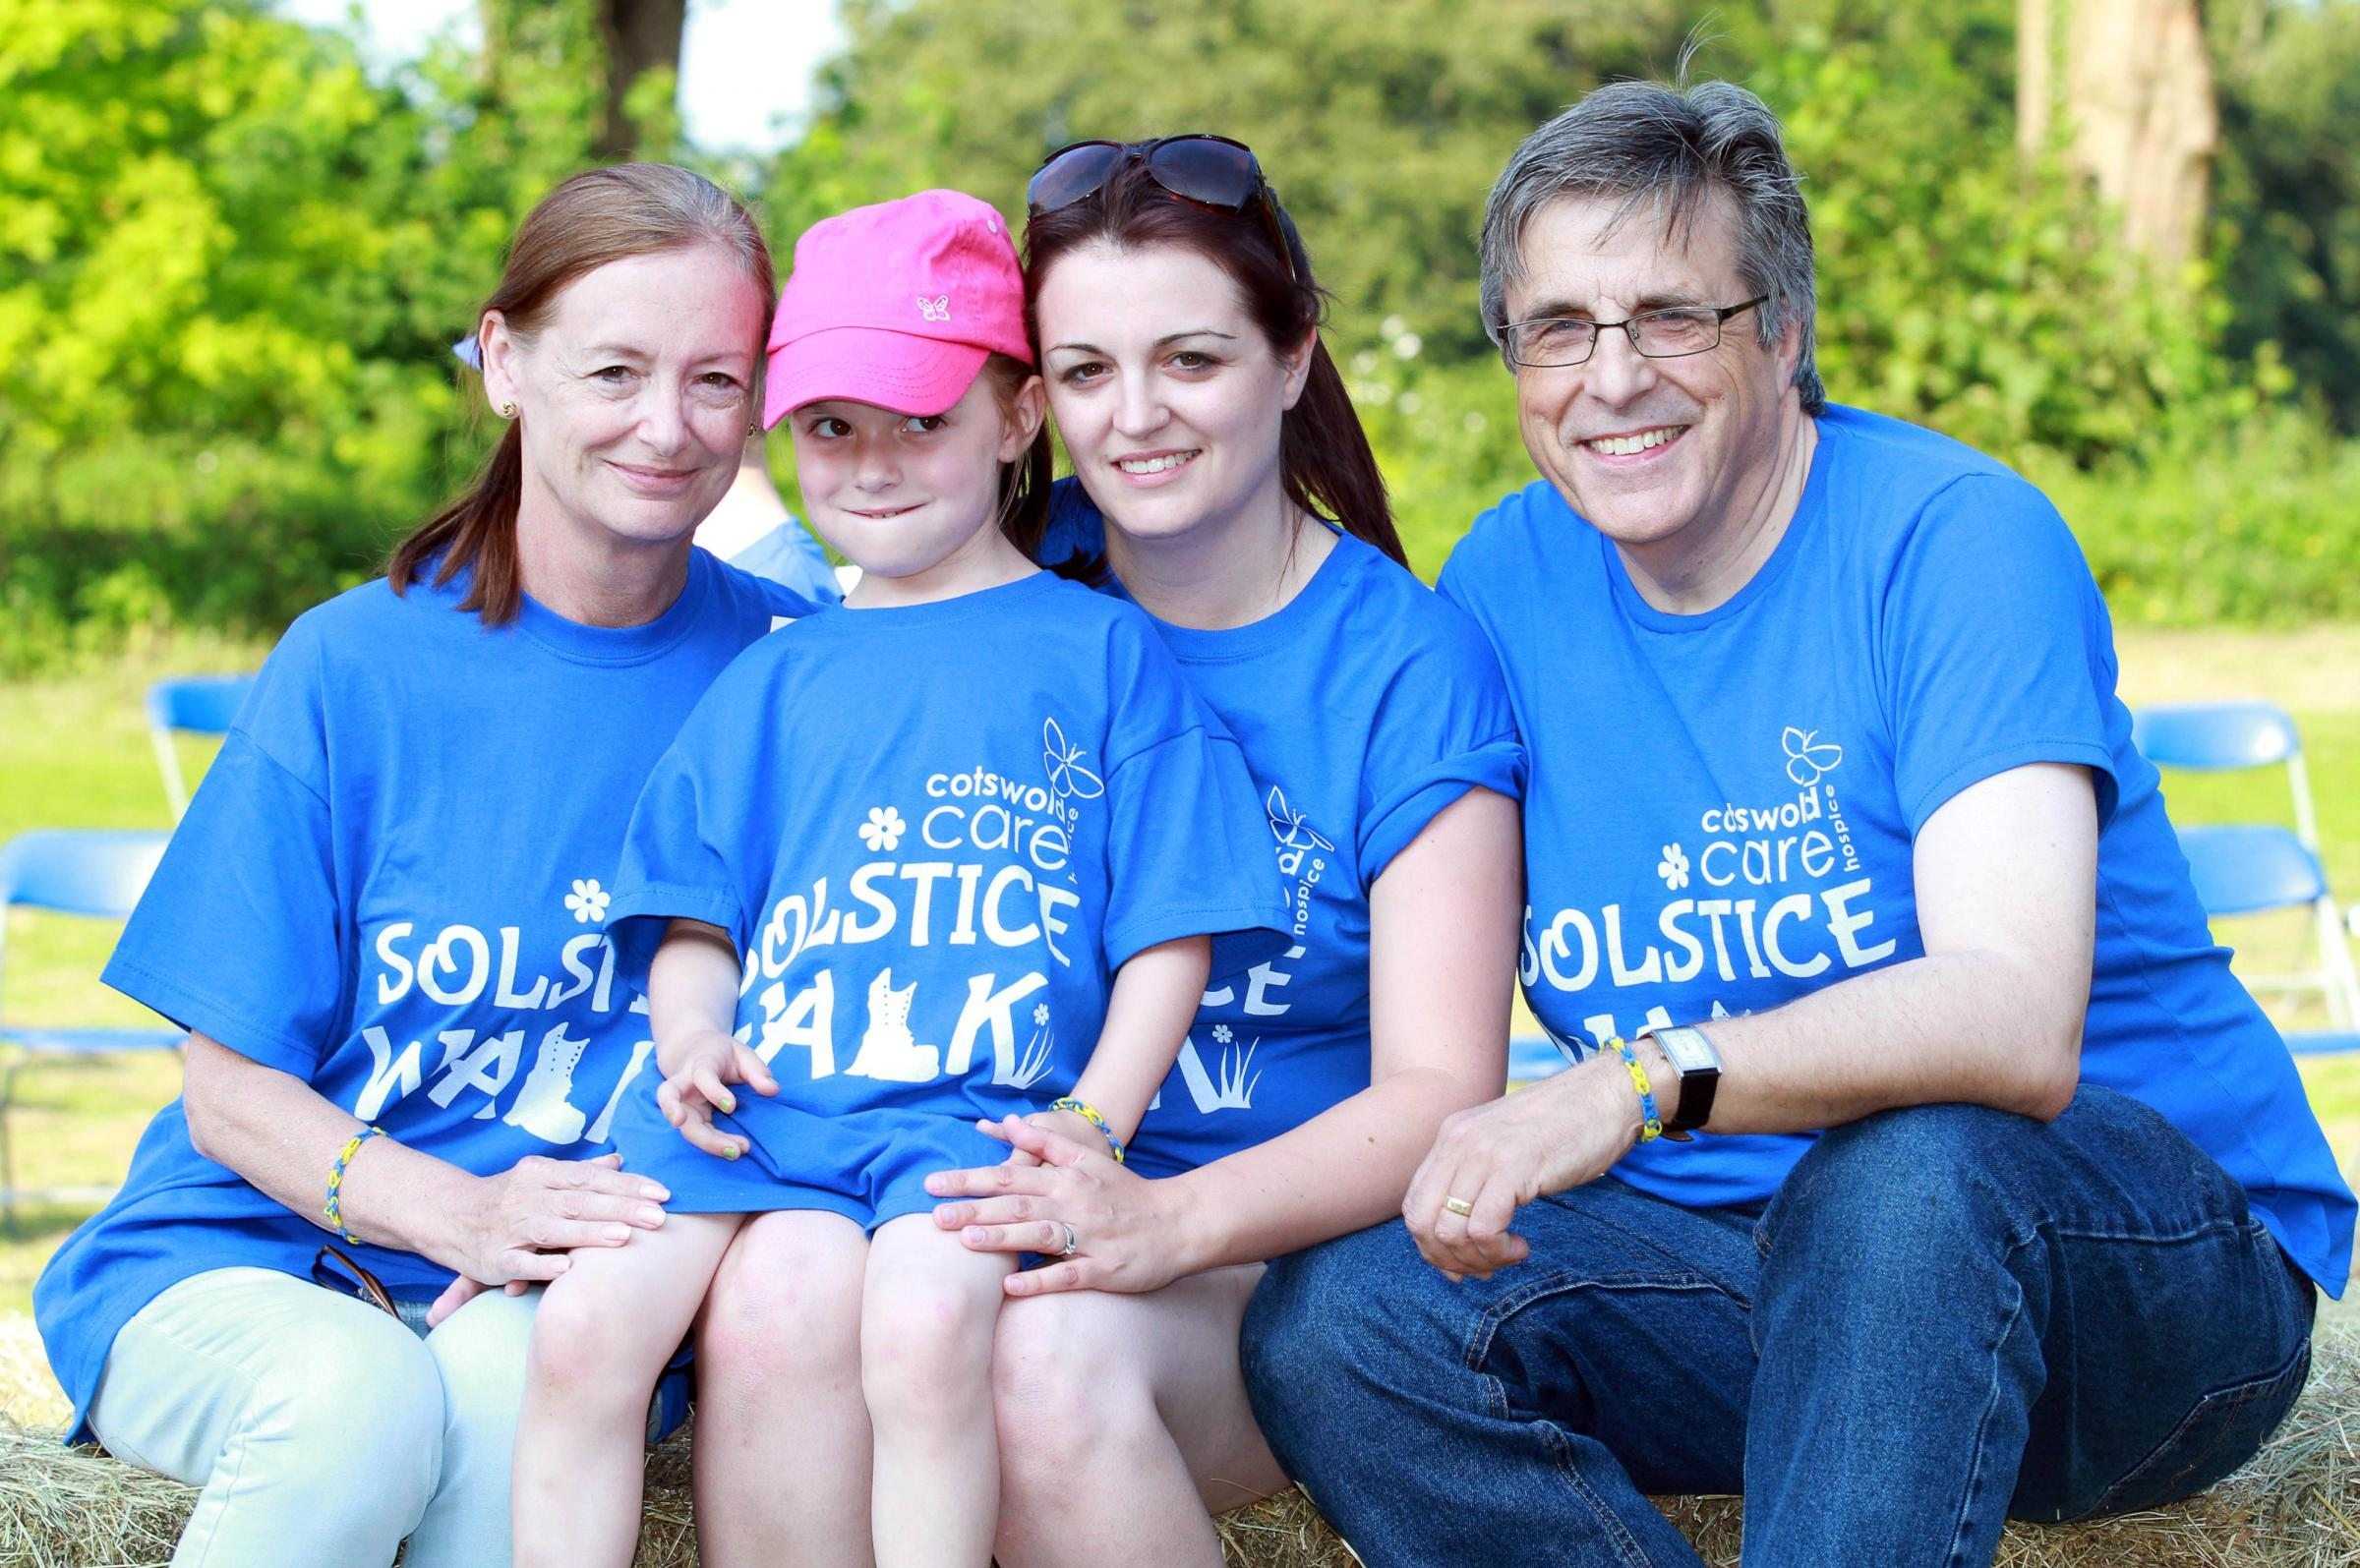 (l-r) Maggie Sage, Ellie Naulls, five, Laura Naulls and John Sage.  Picture by Carl Hewlett/TWM - Thousand Word Media Ltd